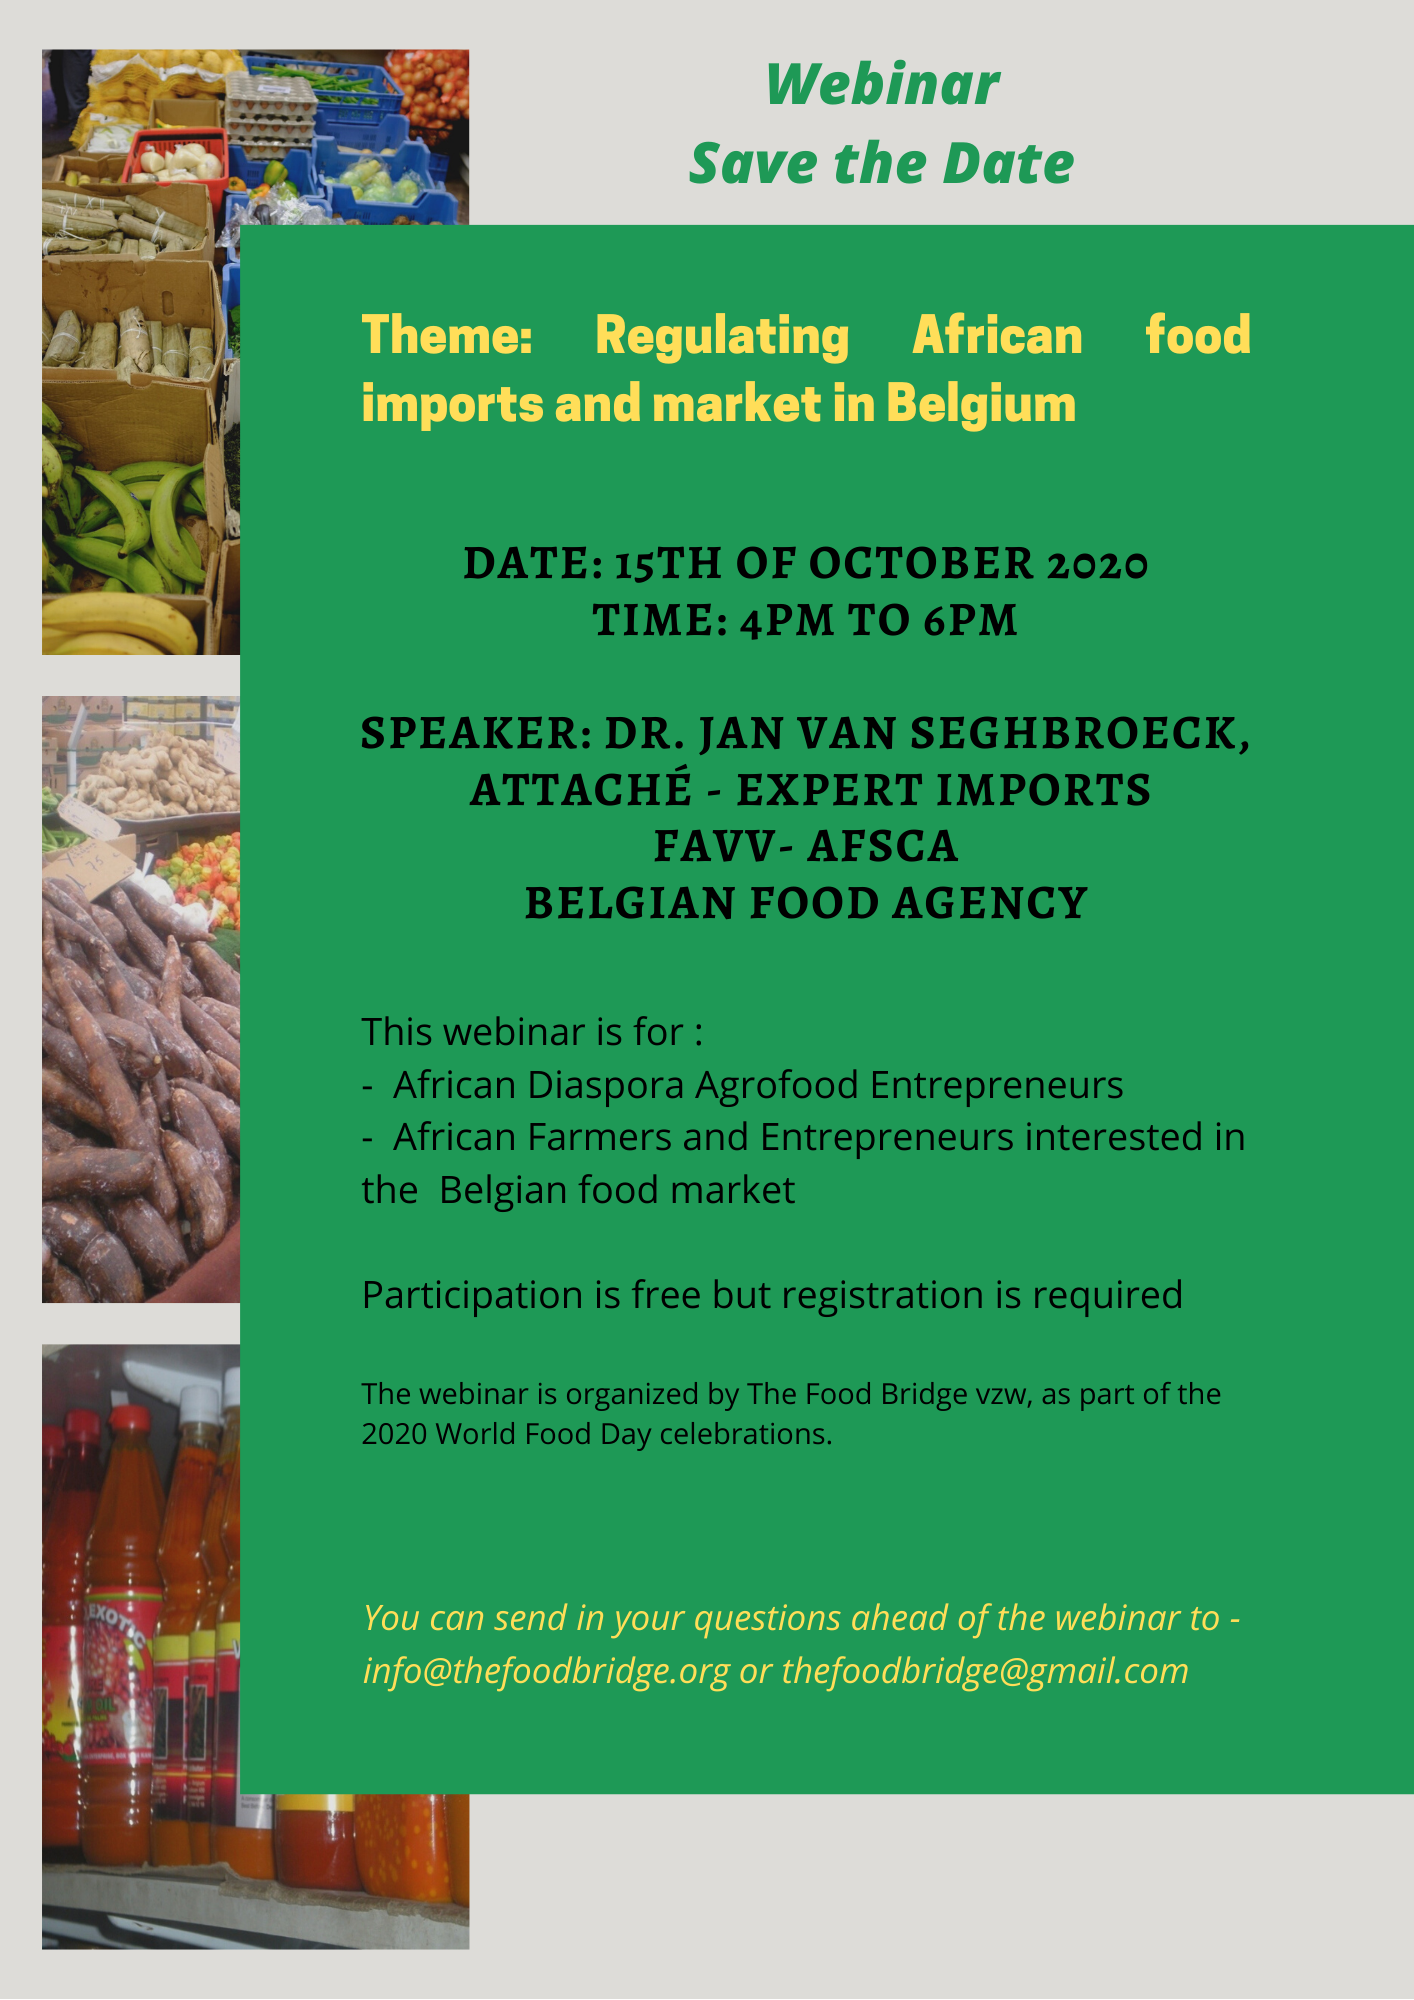 African food imports in Belgium